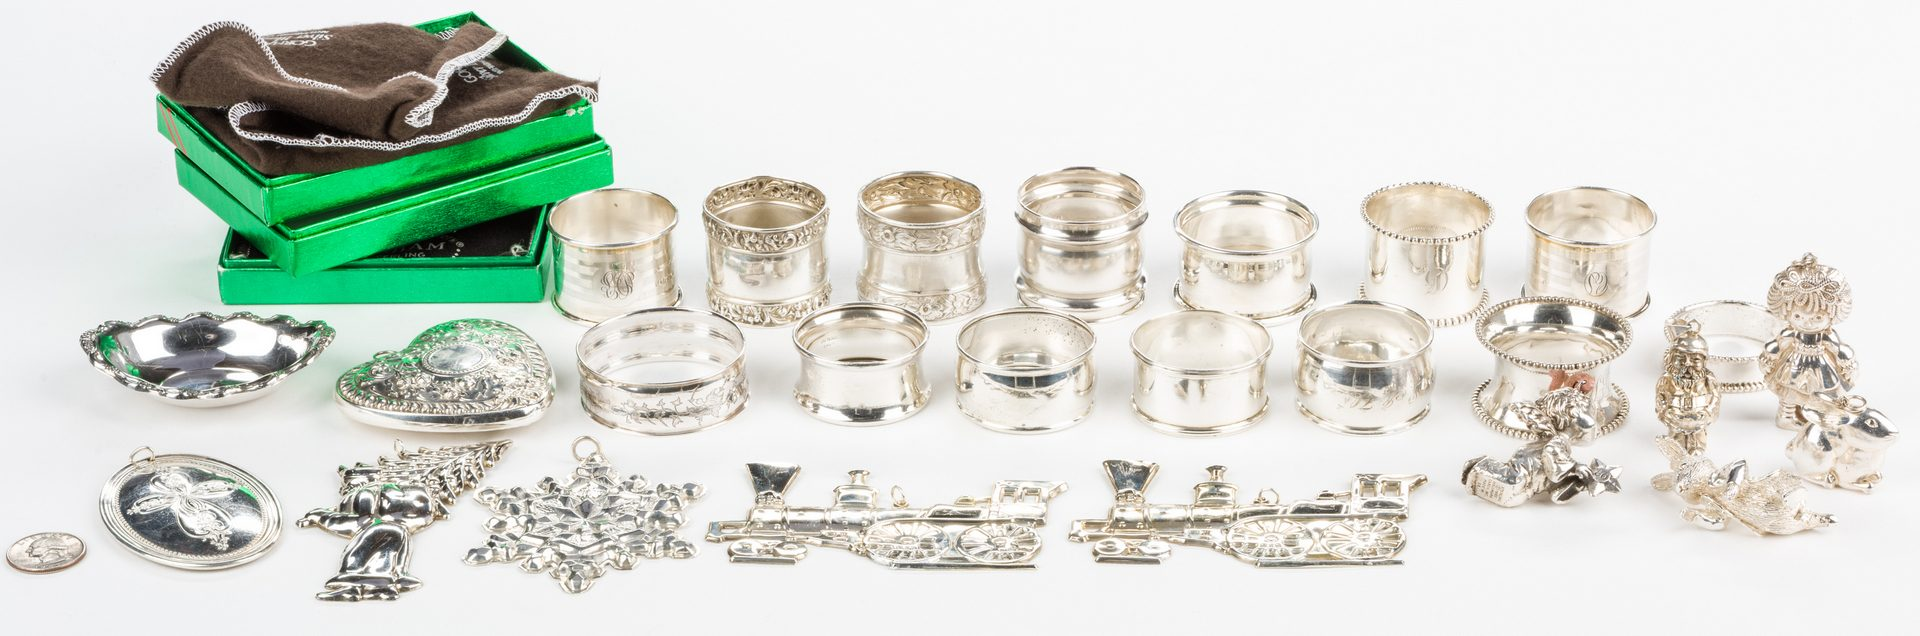 Lot 876: Assorted Sterling Smalls, 26 pcs inc. ornaments, napkin rings